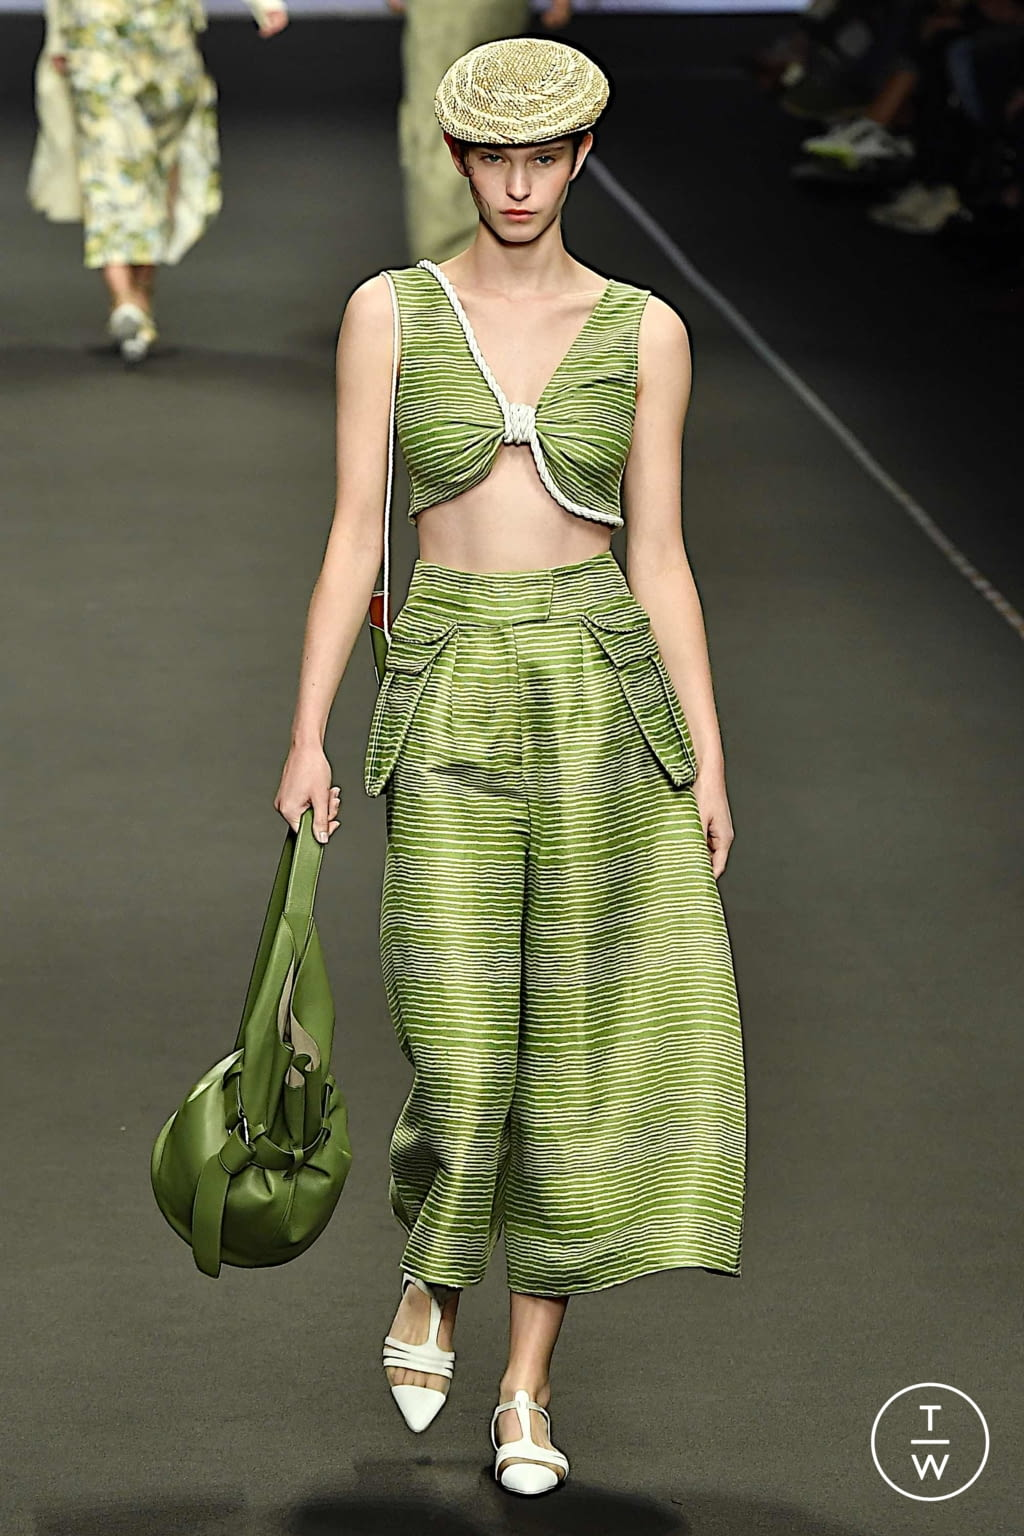 Fashion Week Milan Spring/Summer 2020 look 29 from the Anteprima collection 女装